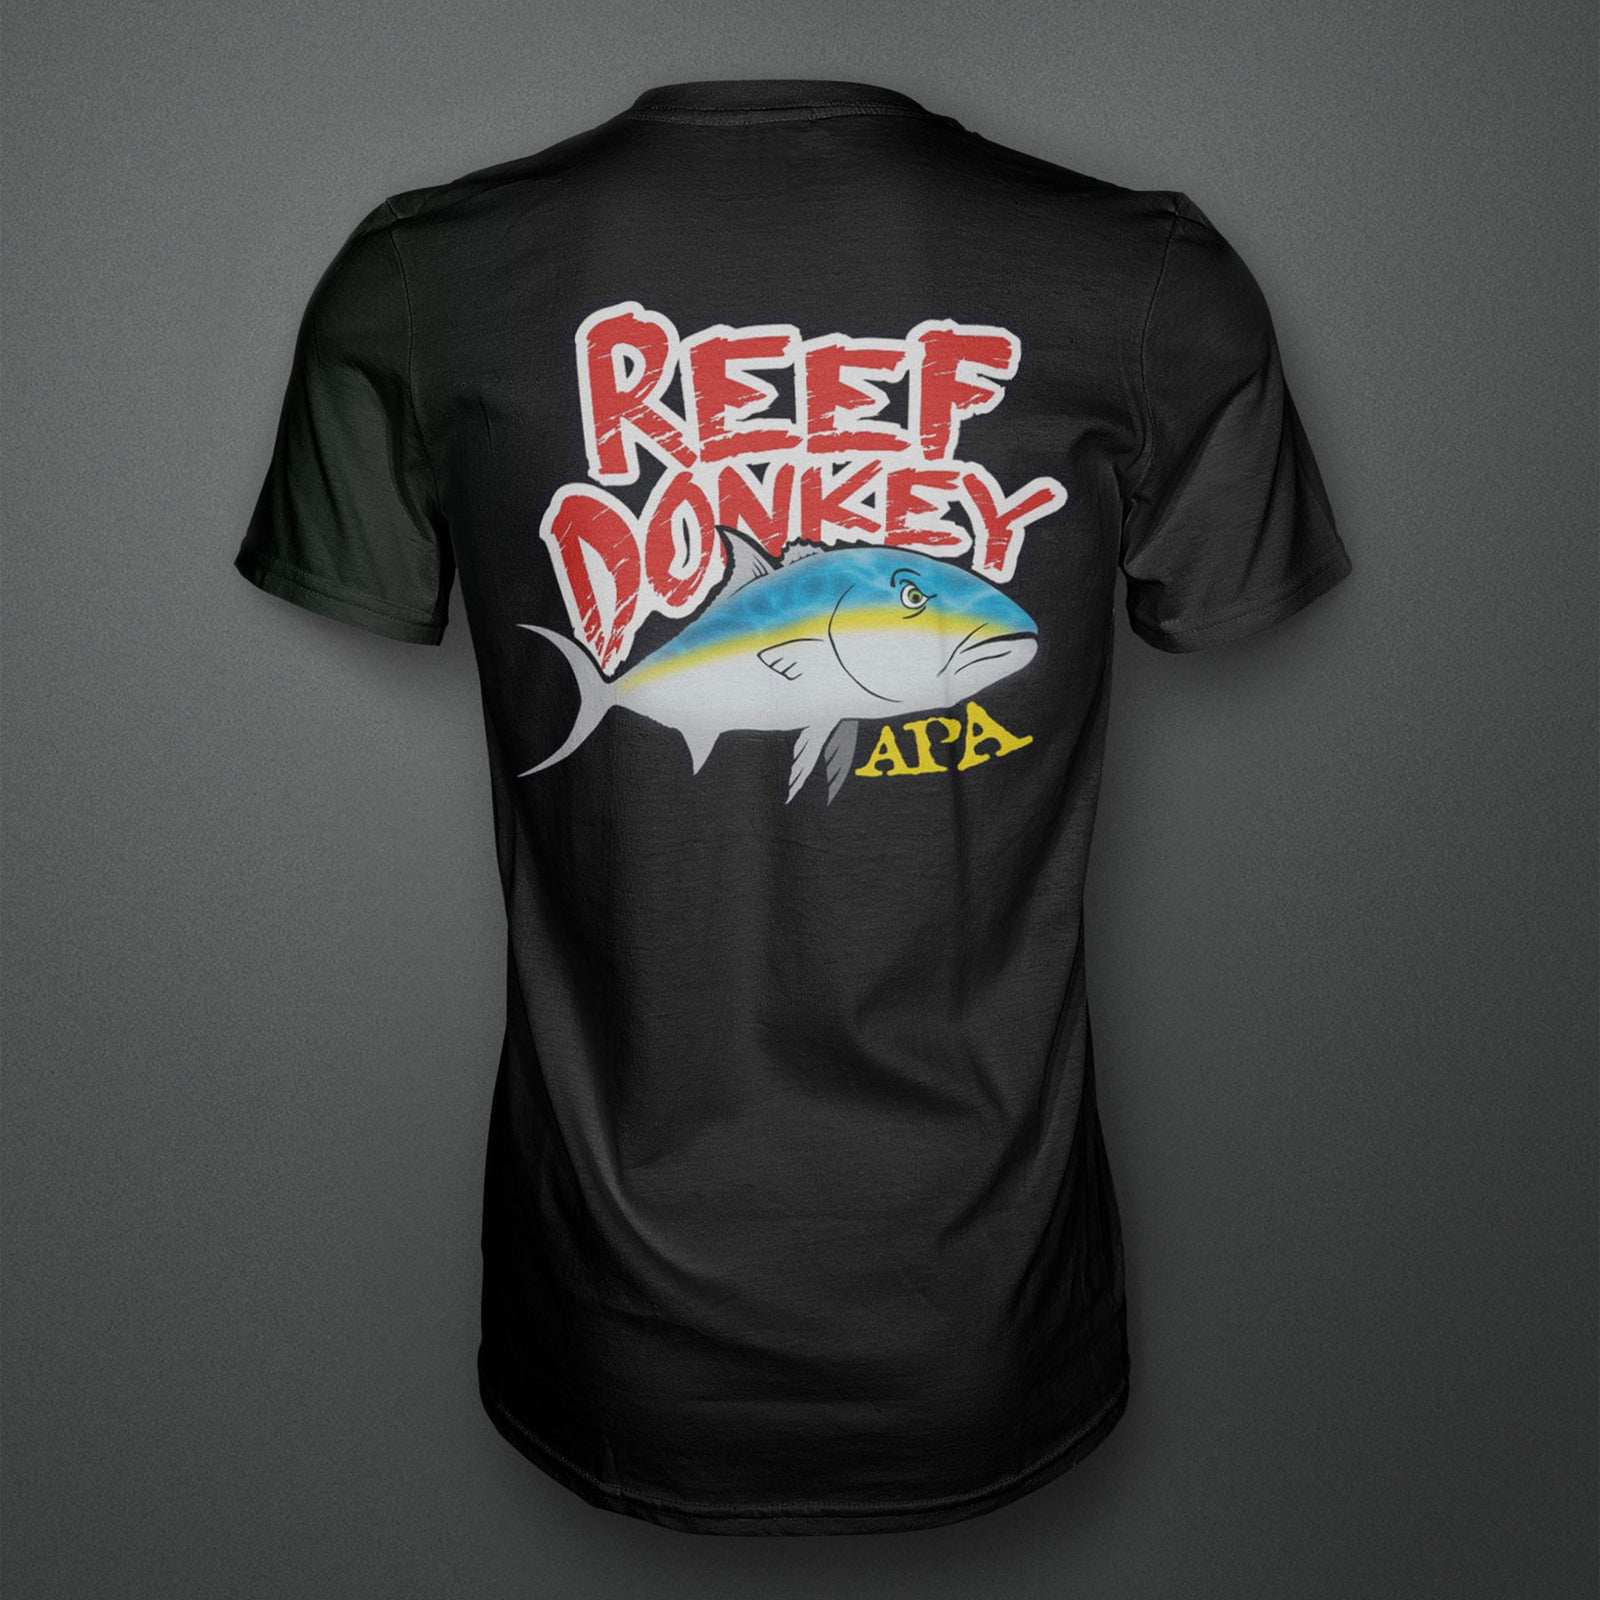 Reef Donkey T-Shirt - Black